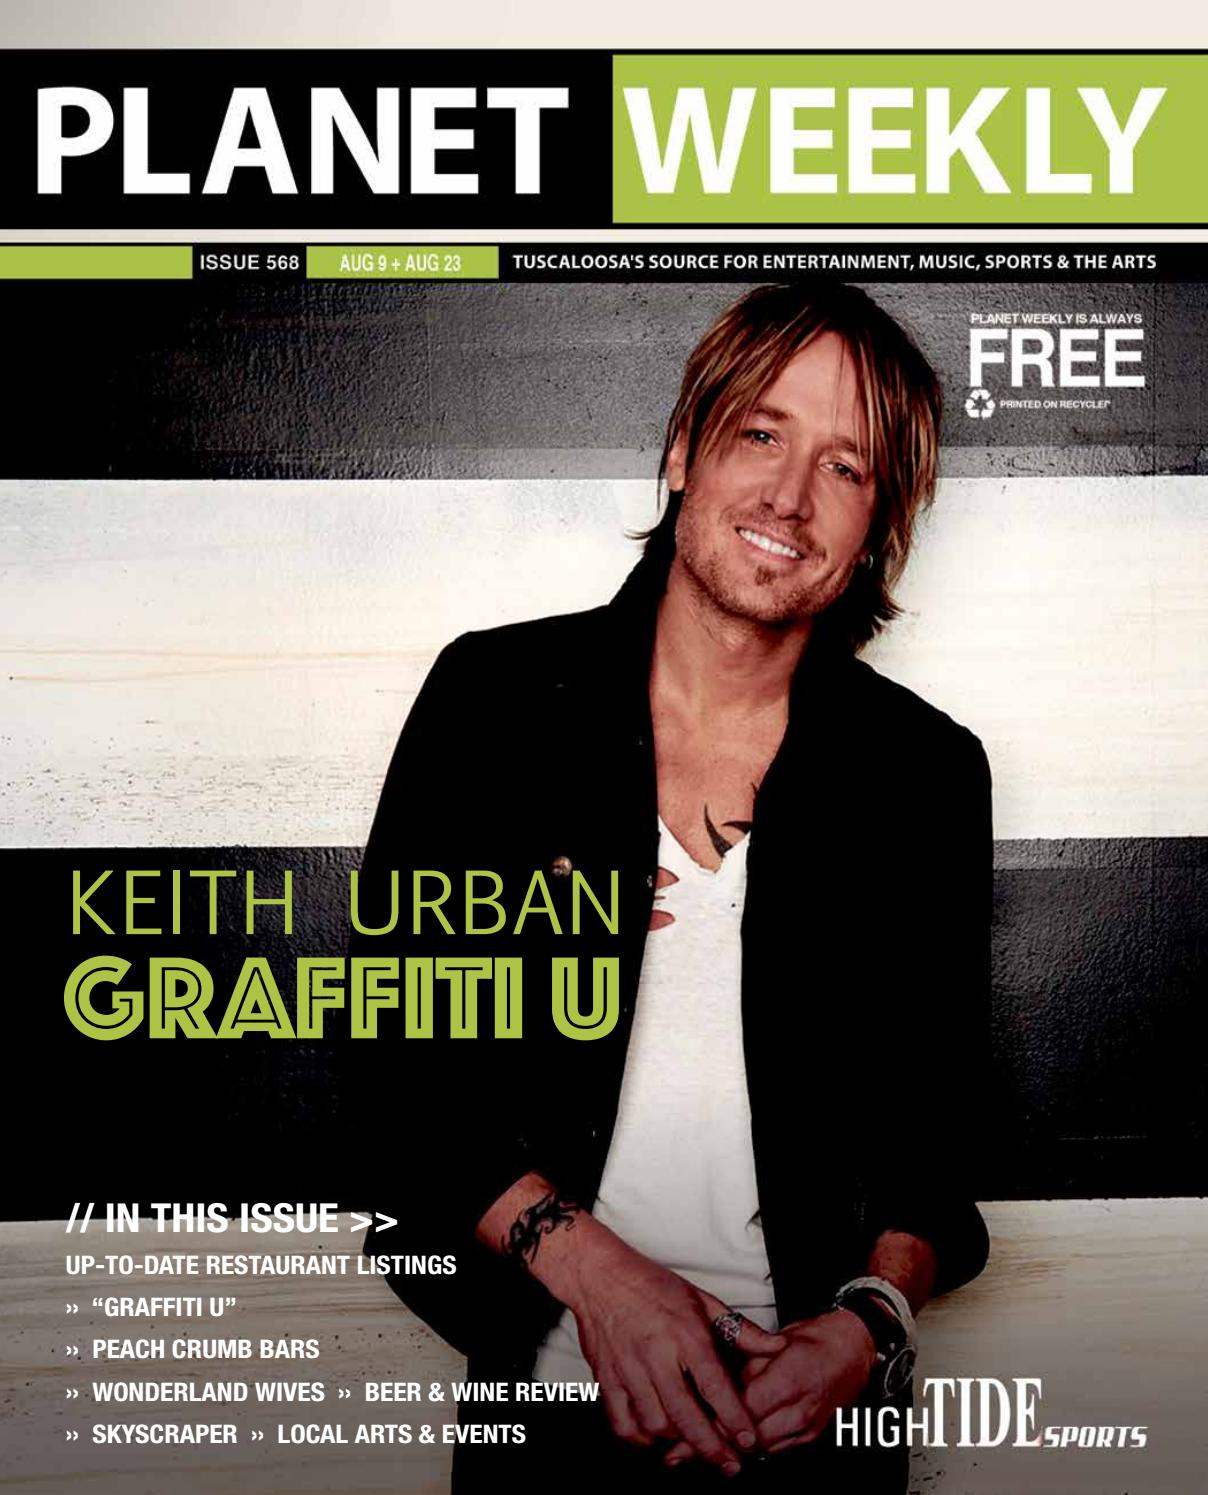 Keith urban talks about his new album with the planet weekly